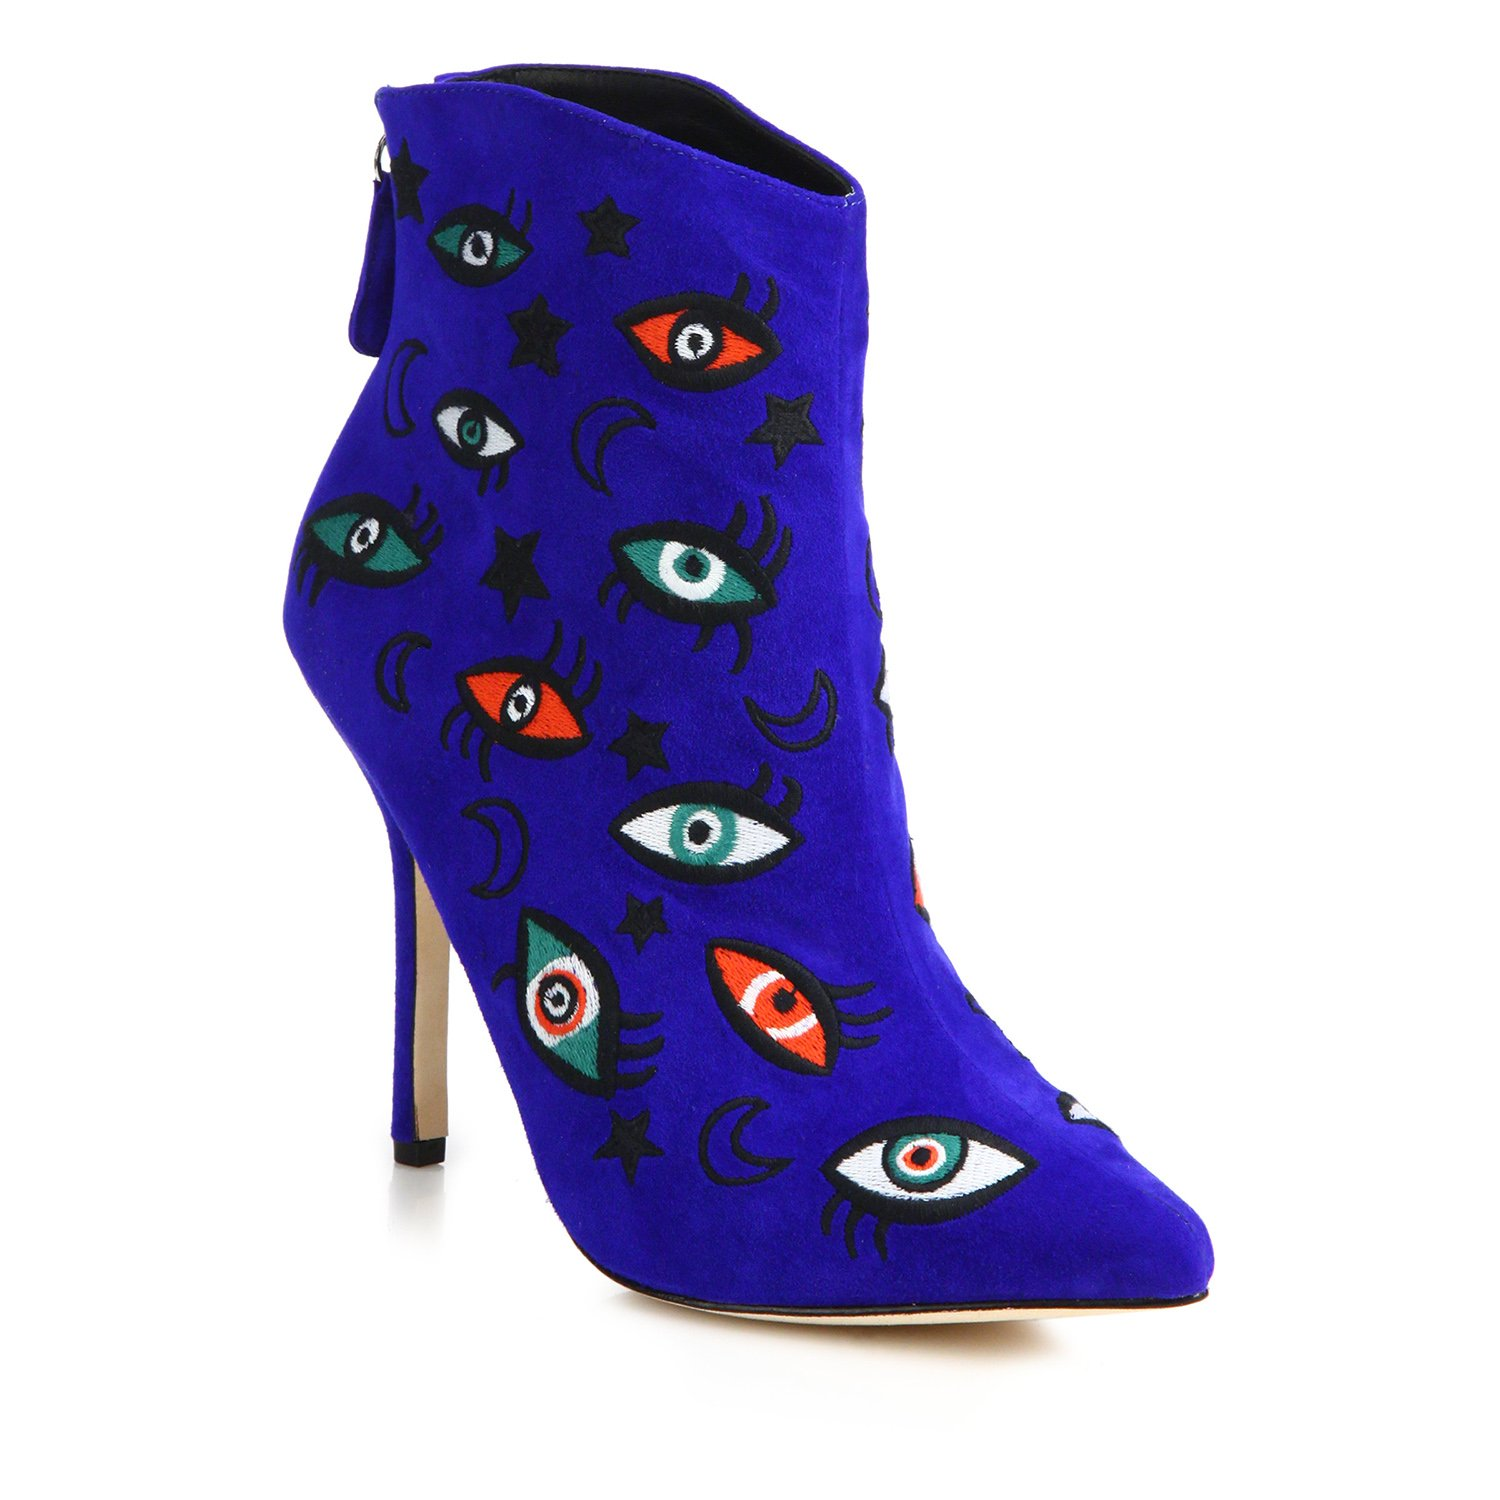 Isa Tapia Juliette Embroidered Eyes and Stars Blue Suede Point-Toe Booties - Blue Stars B079MGN826 6 M US 49abb6